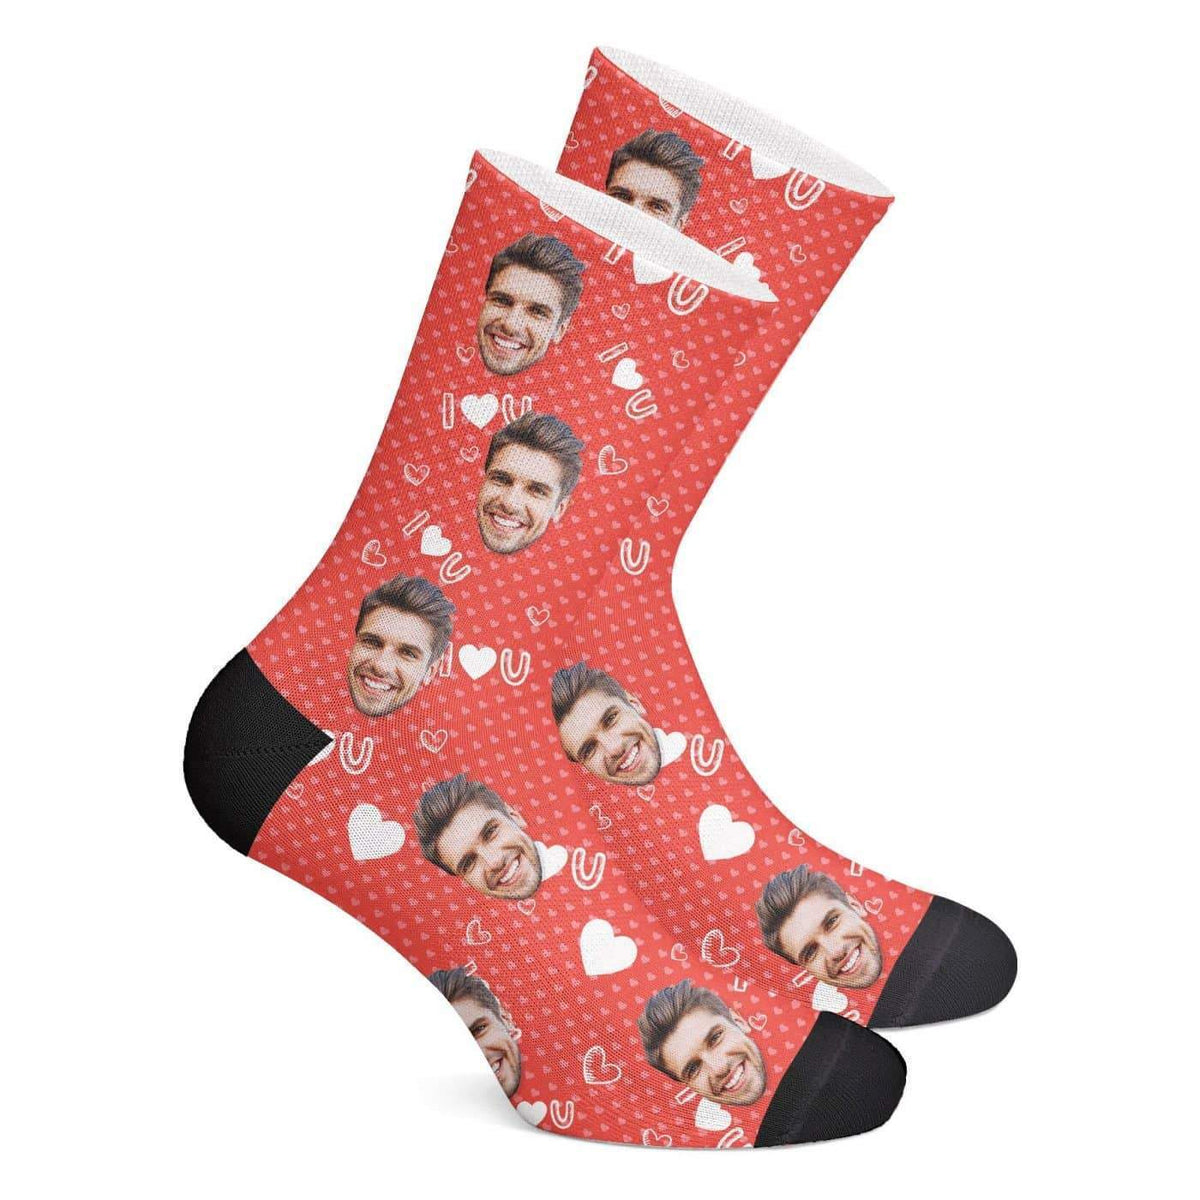 Customized Love Socks